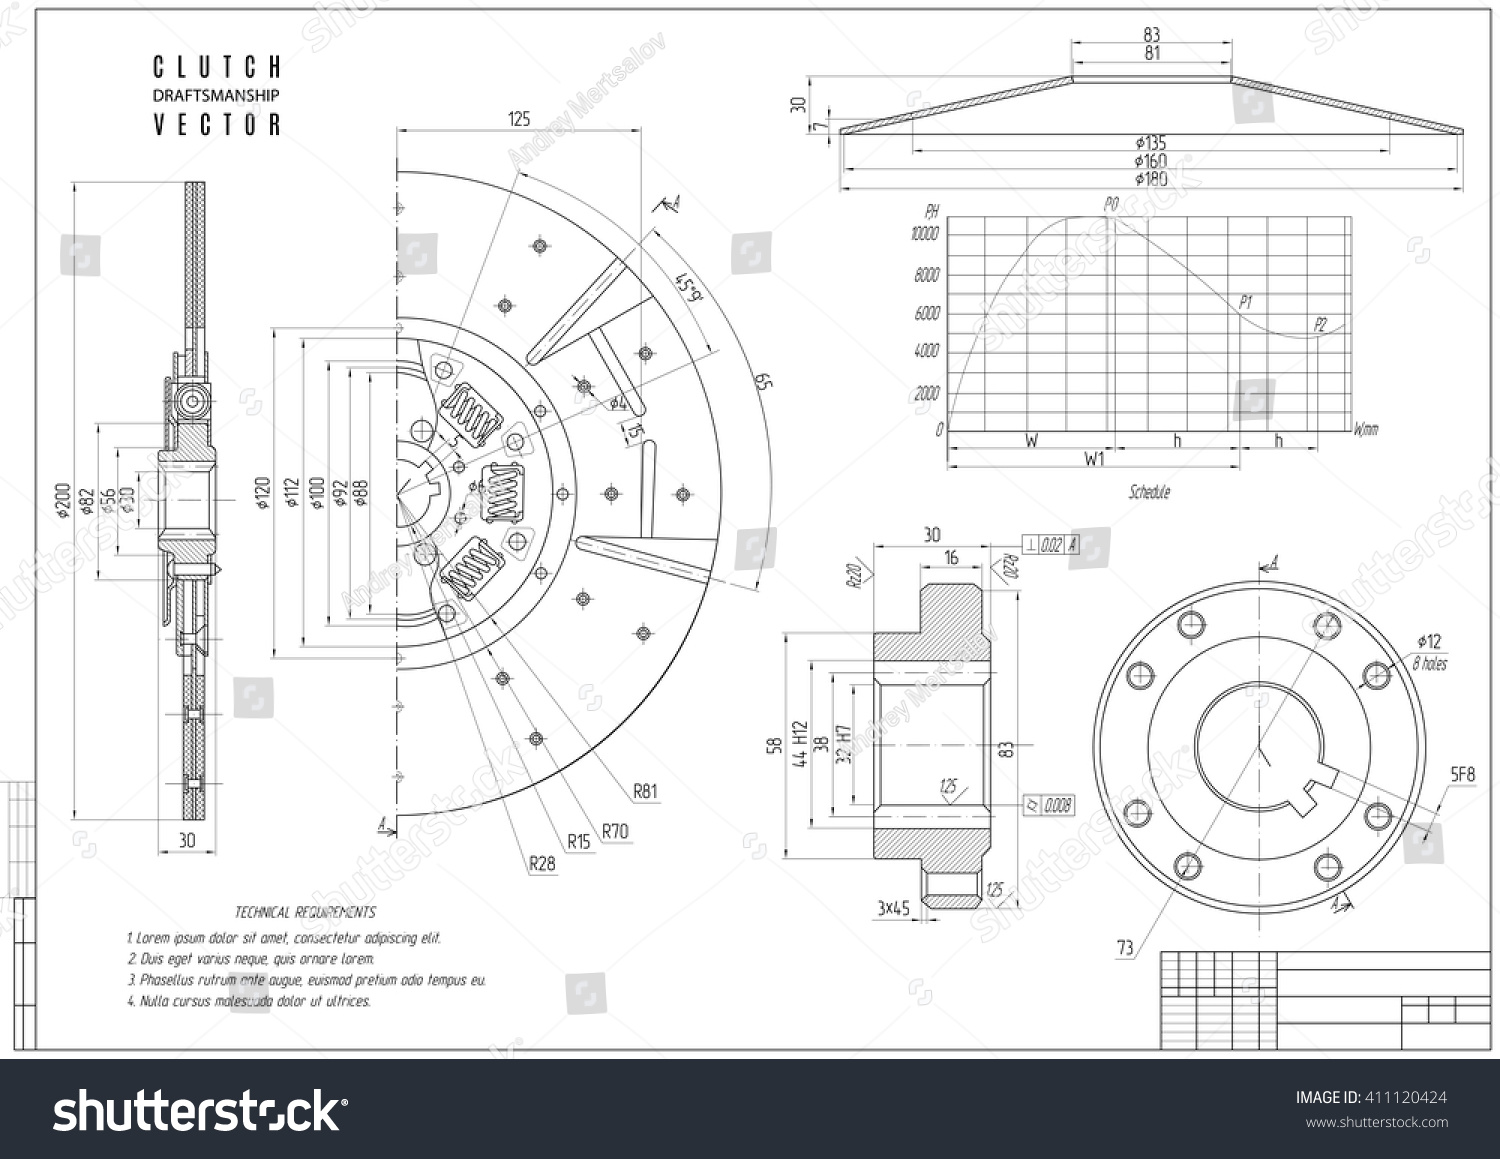 technical drawing clutch construction draft horizontal stock vector